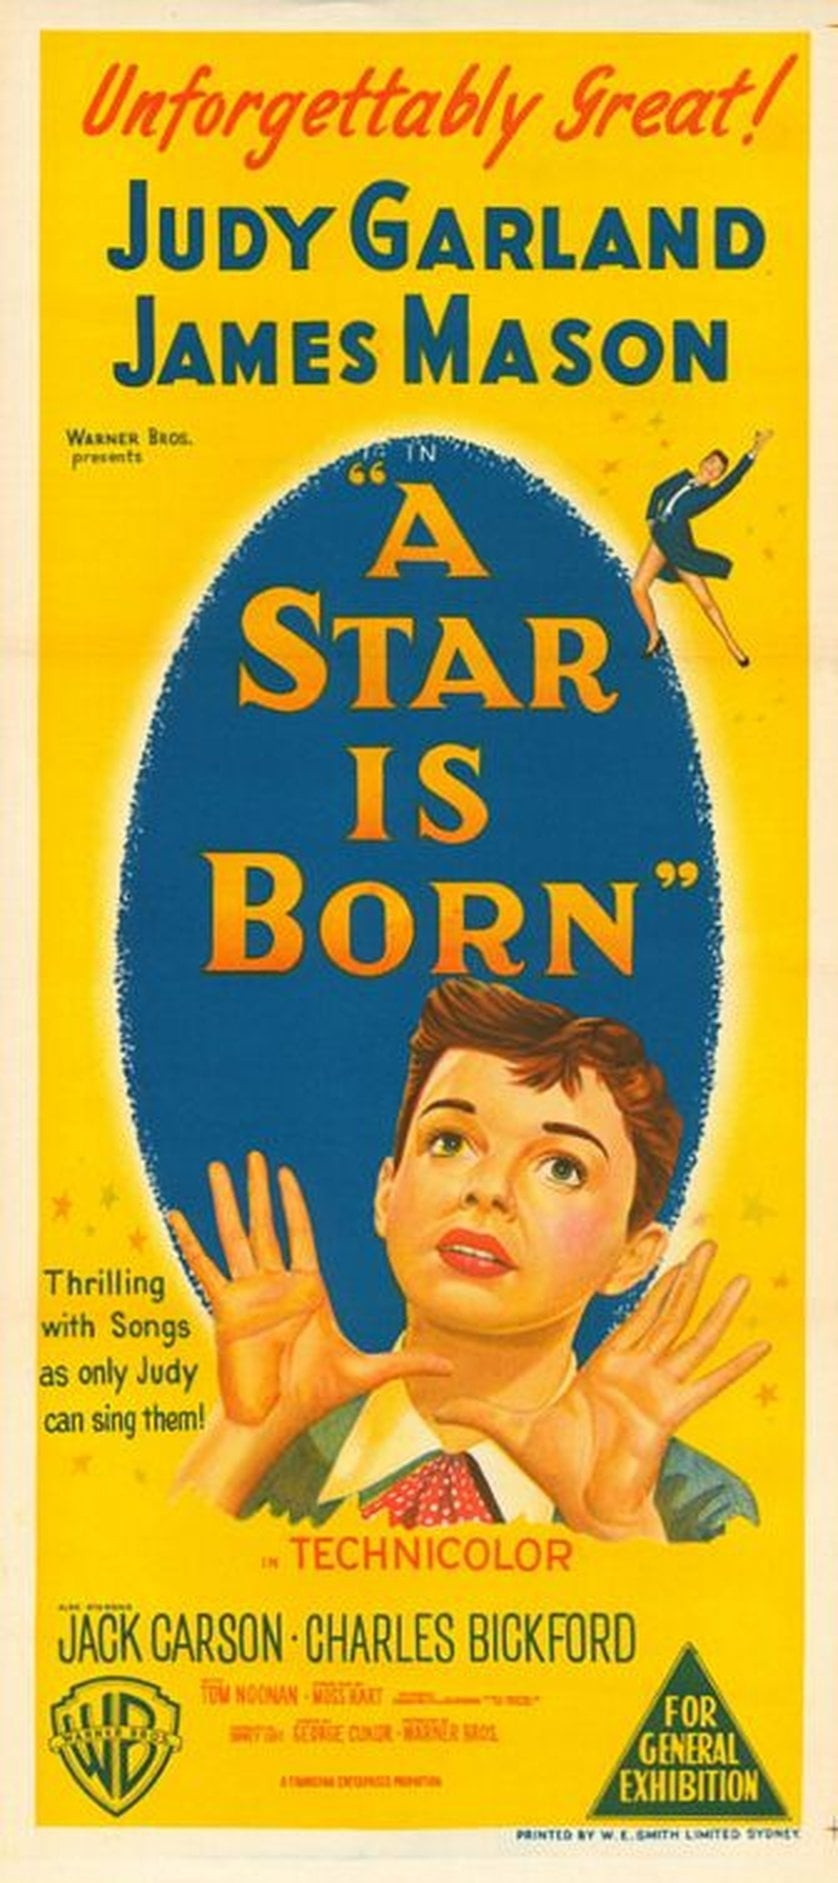 A Star Is Born World Premiere (1954)